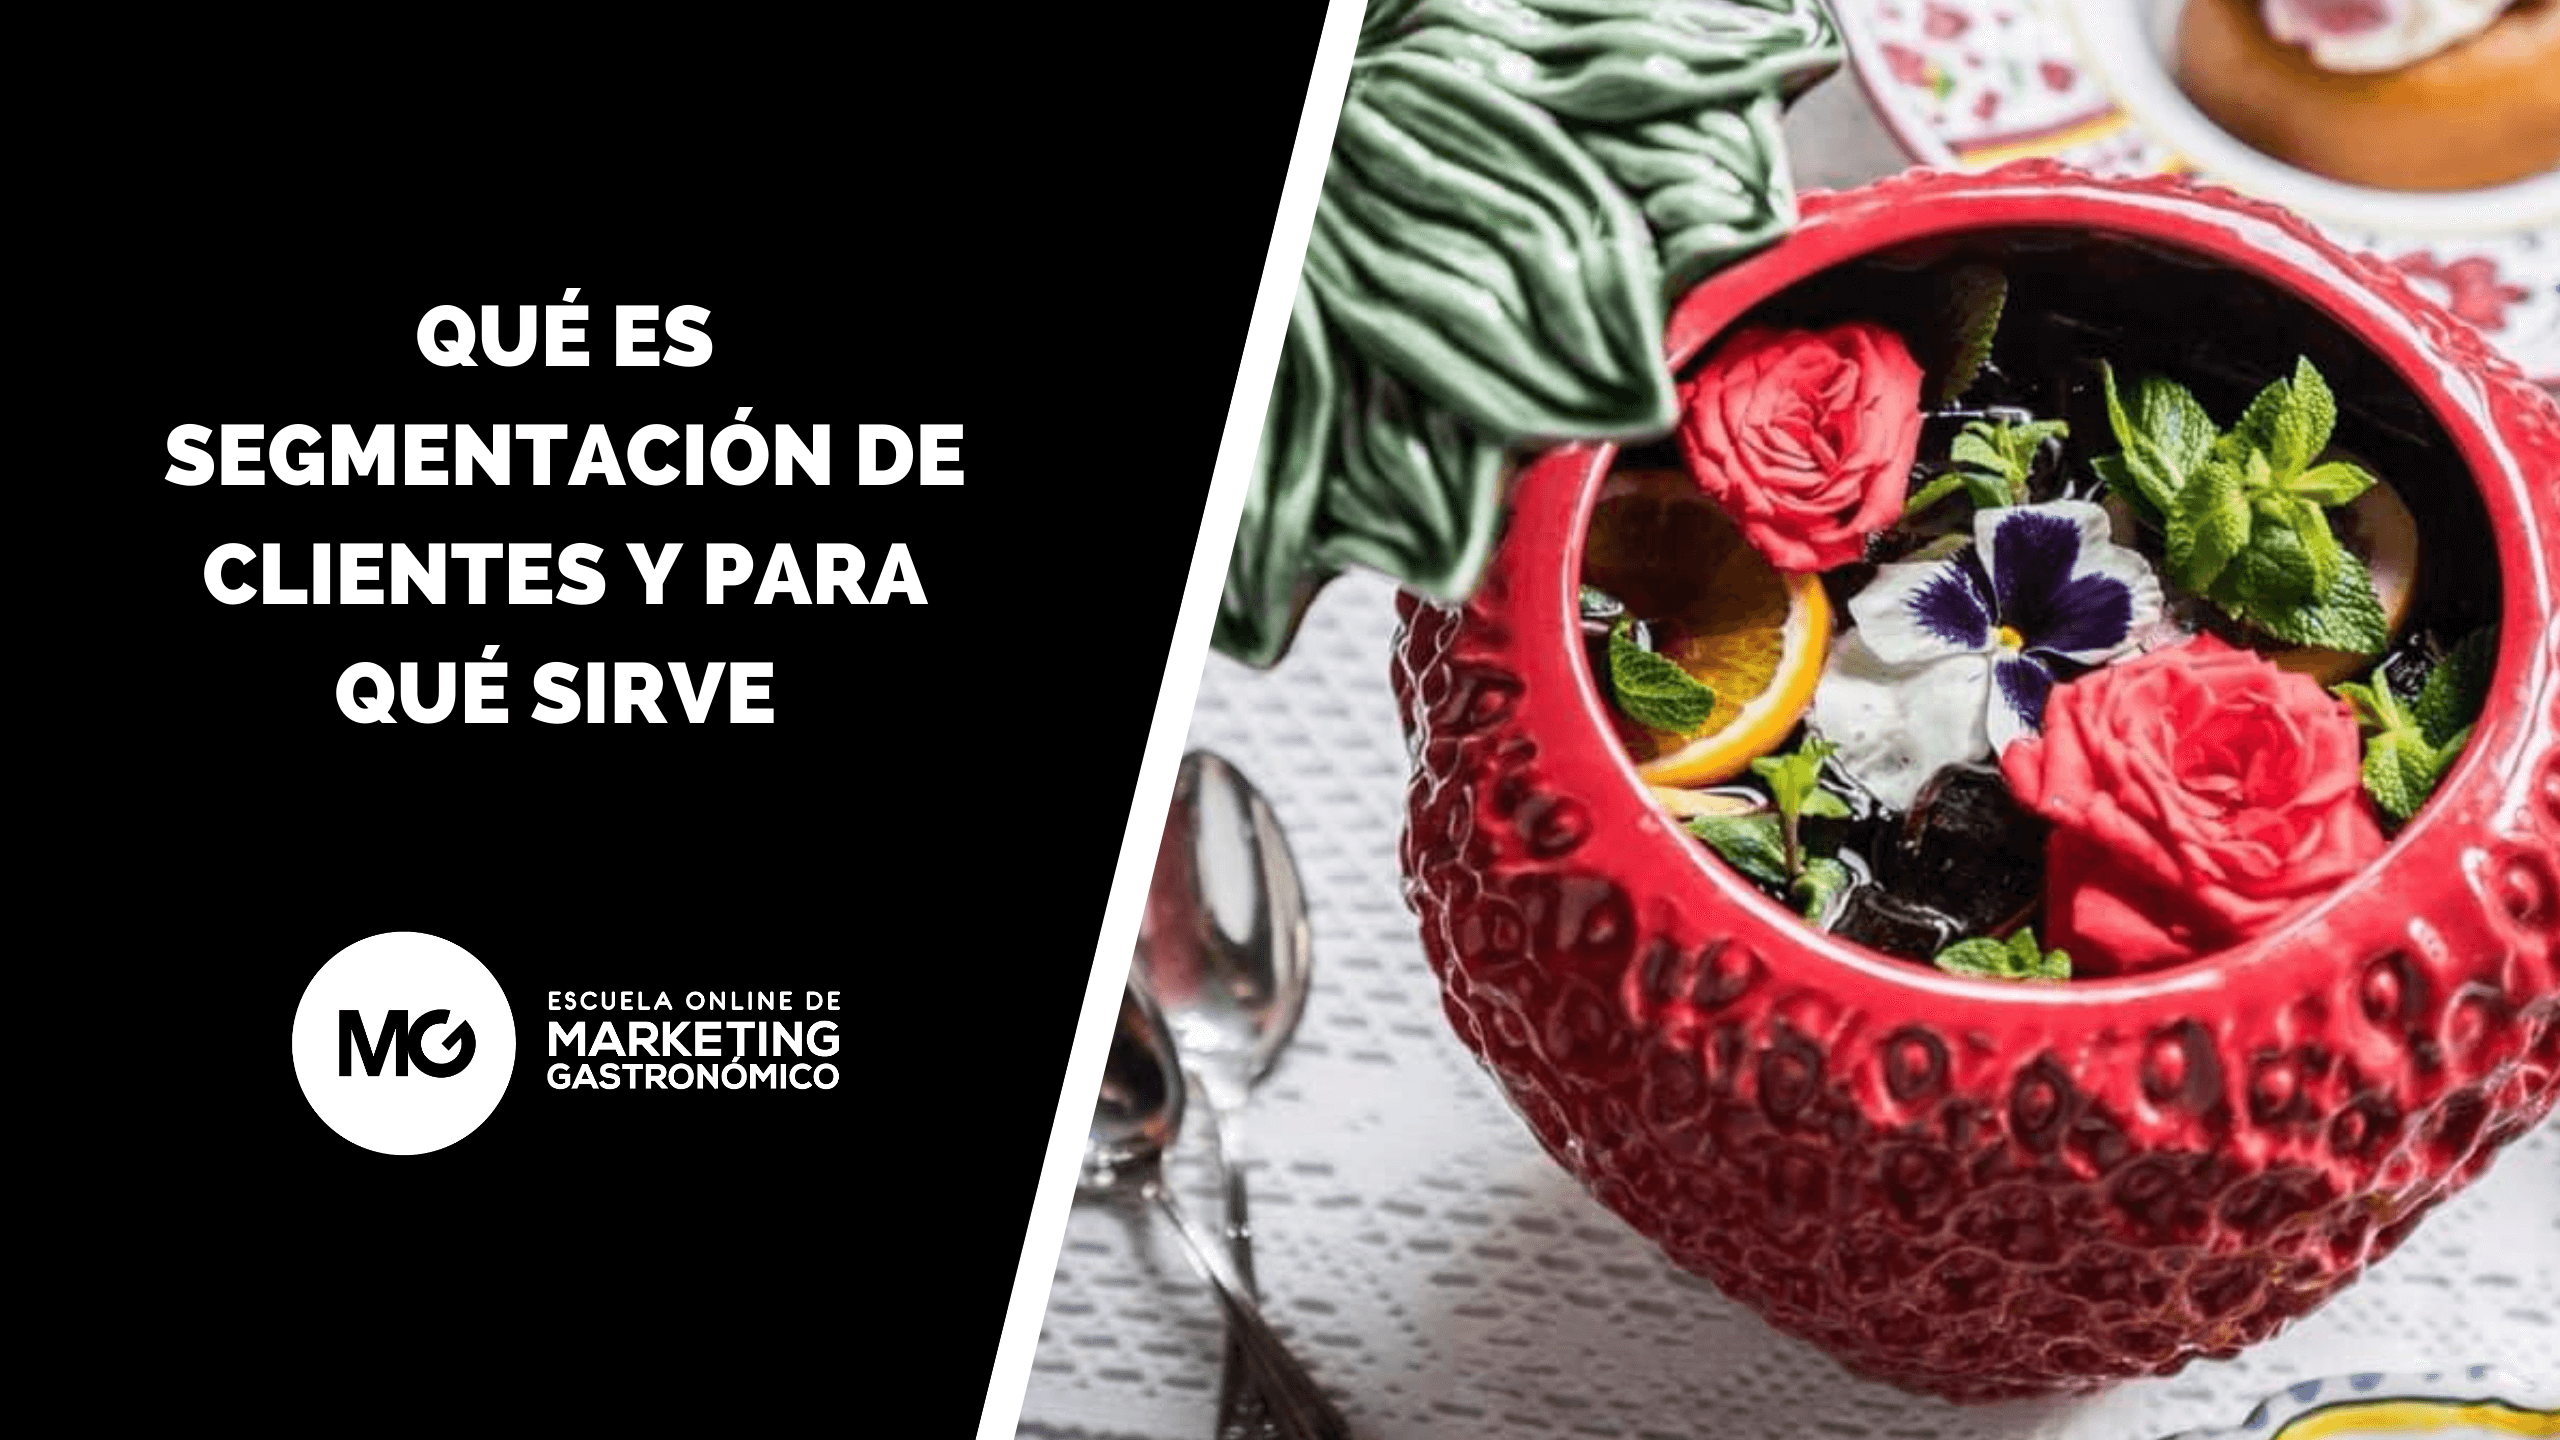 erika silva marketing gastronomico